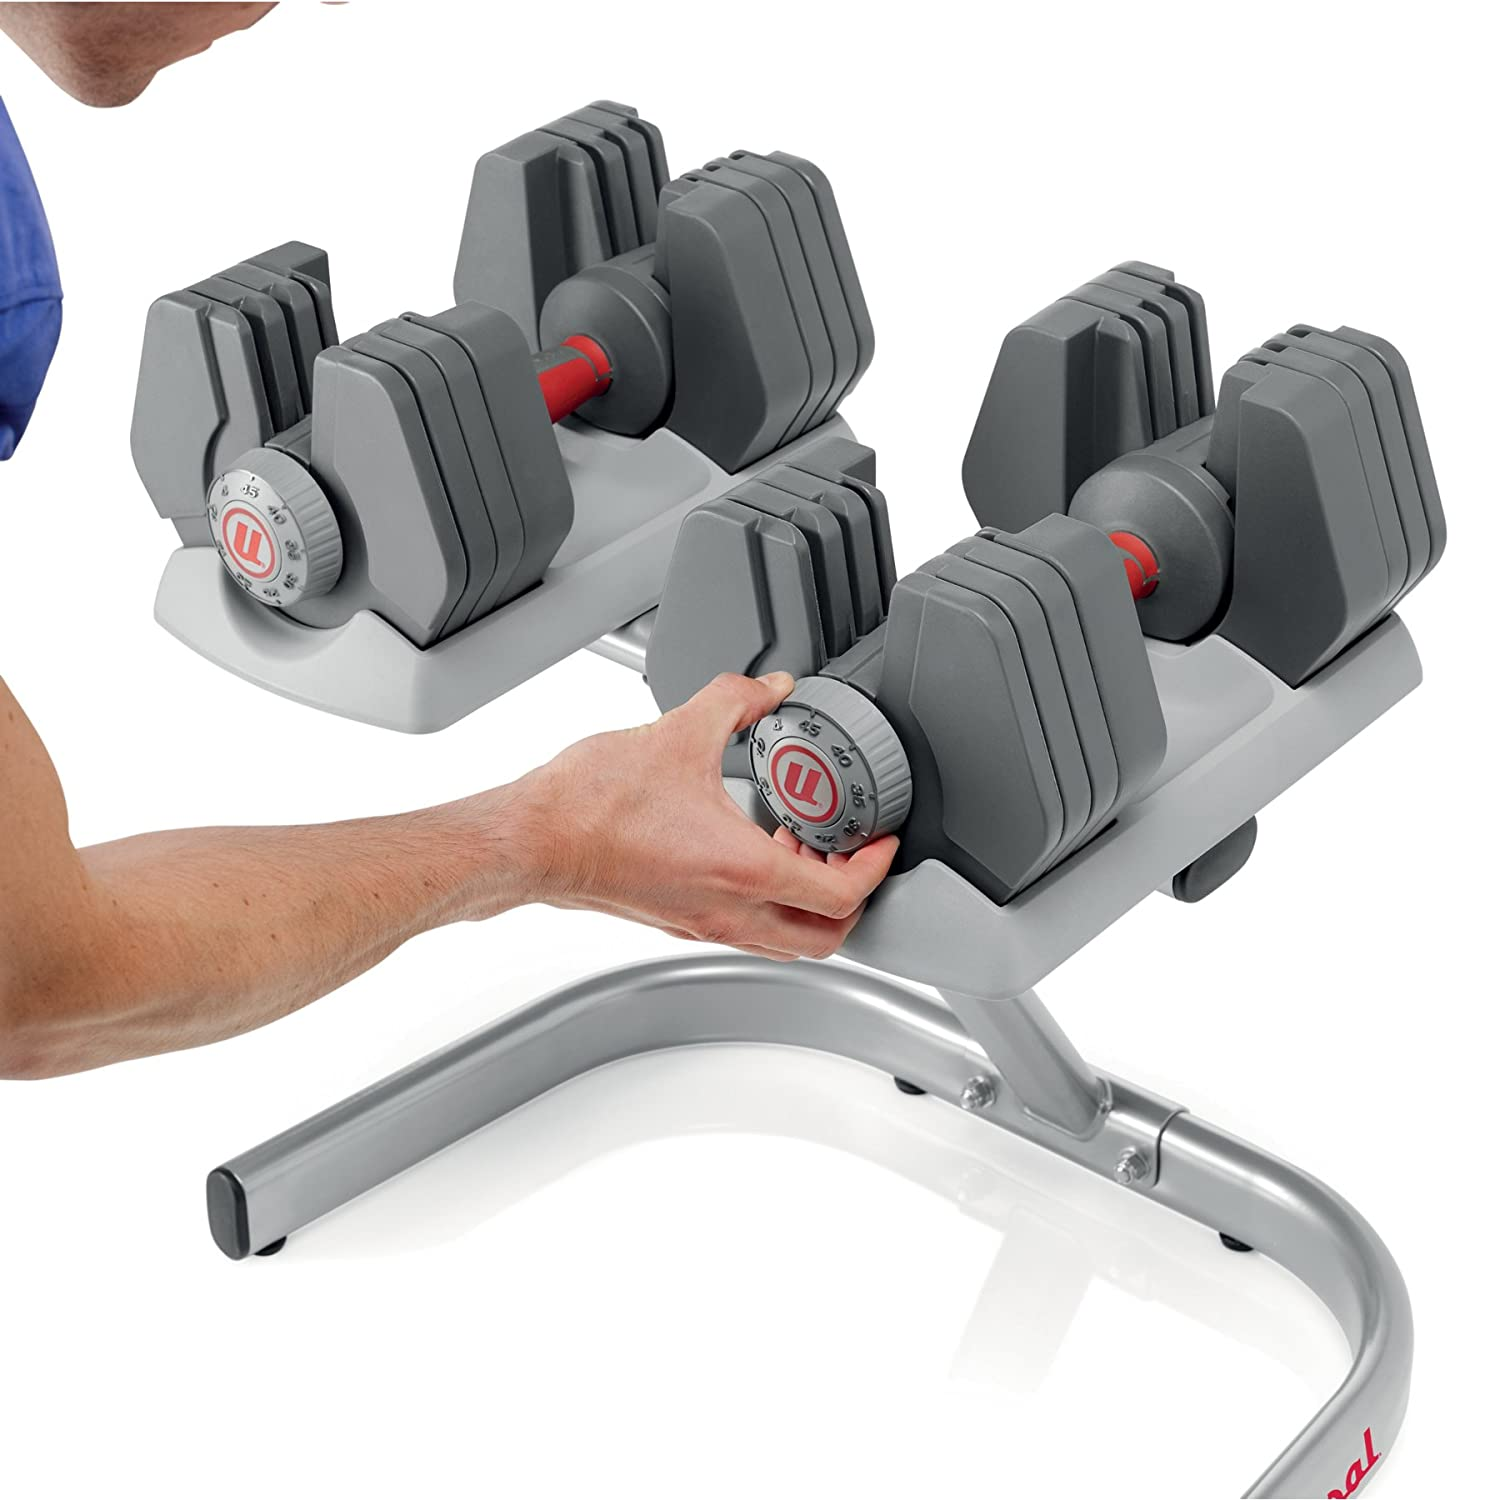 Powerblock Metal Vs Urethane: Best Adjustable Dumbbells Review: Bowflex Vs Powerblock Vs